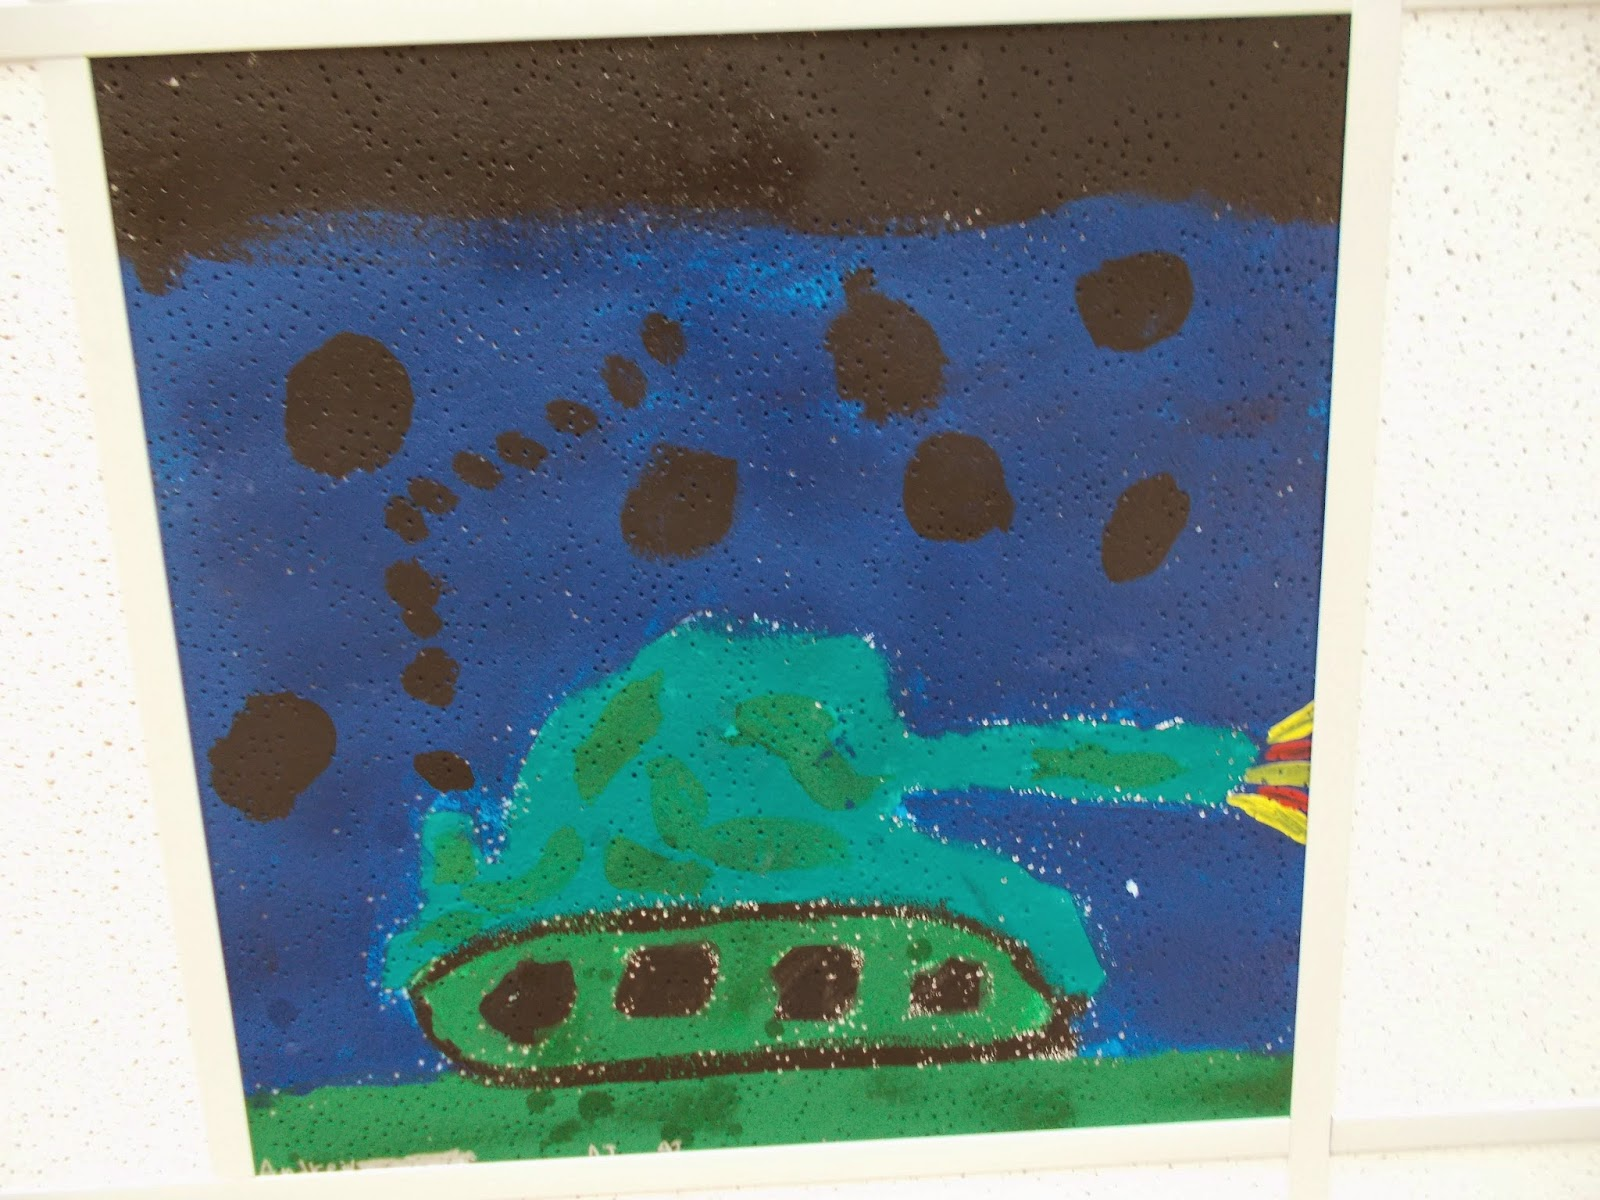 Mrs pierces polka dot spot art club painted ceiling tiles art club painted ceiling tiles i do an after school art club during the late fall and winter months the last two years weve been using the club to try dailygadgetfo Gallery